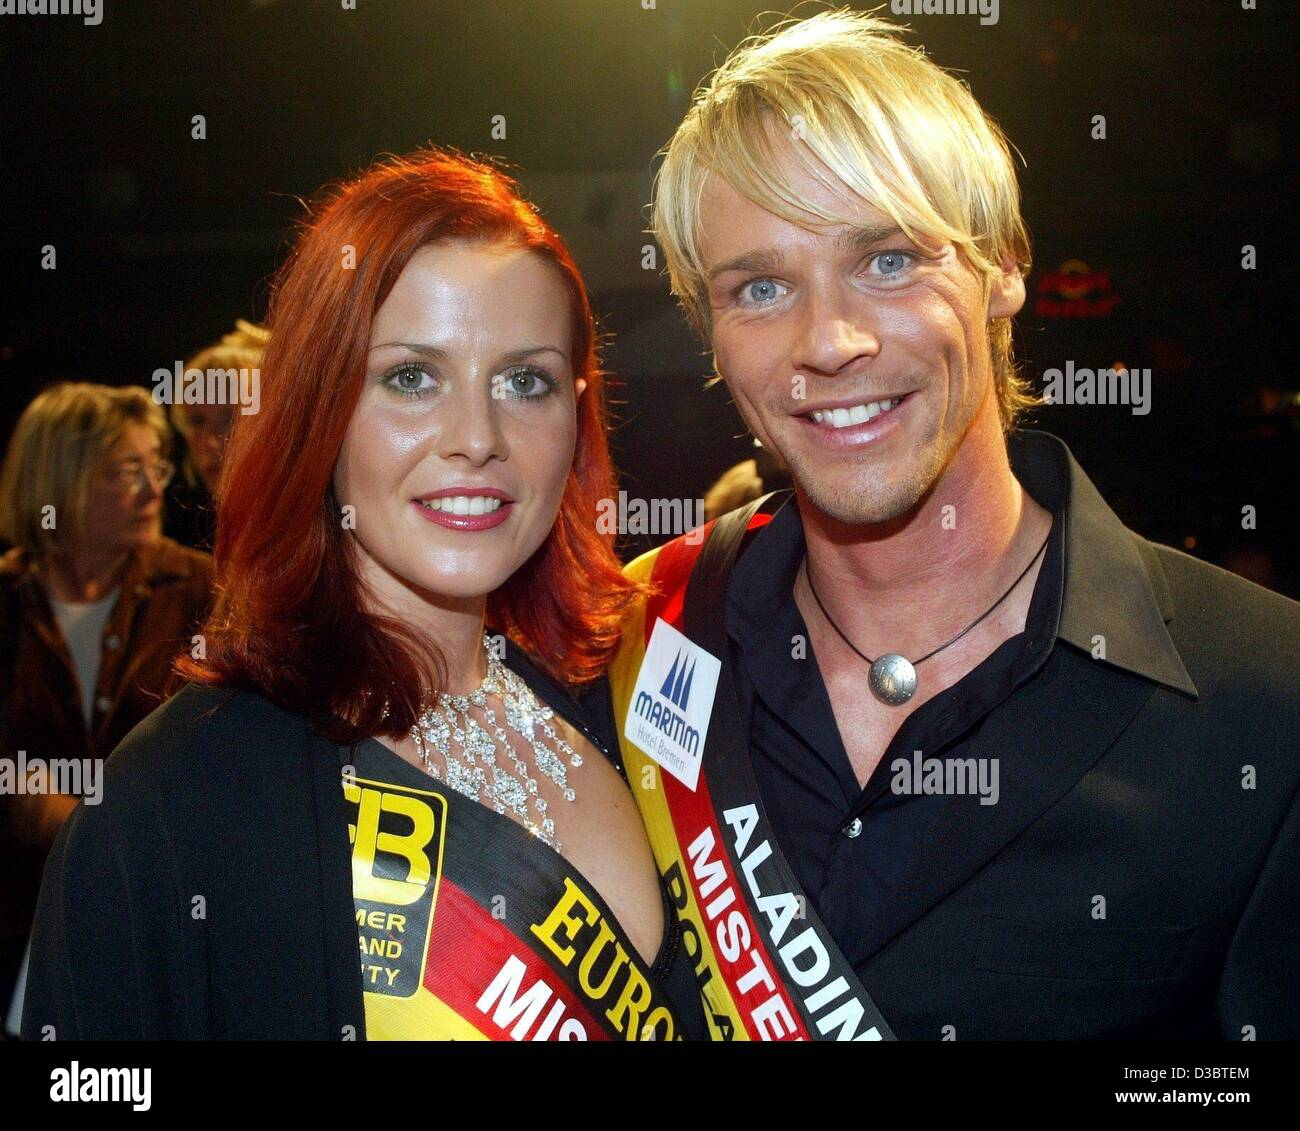 (dpa) - Ralph Schulz, the newly elected Mister Germany 2003, and Babett Konau, Miss Germany 2003 since January, - Stock Image